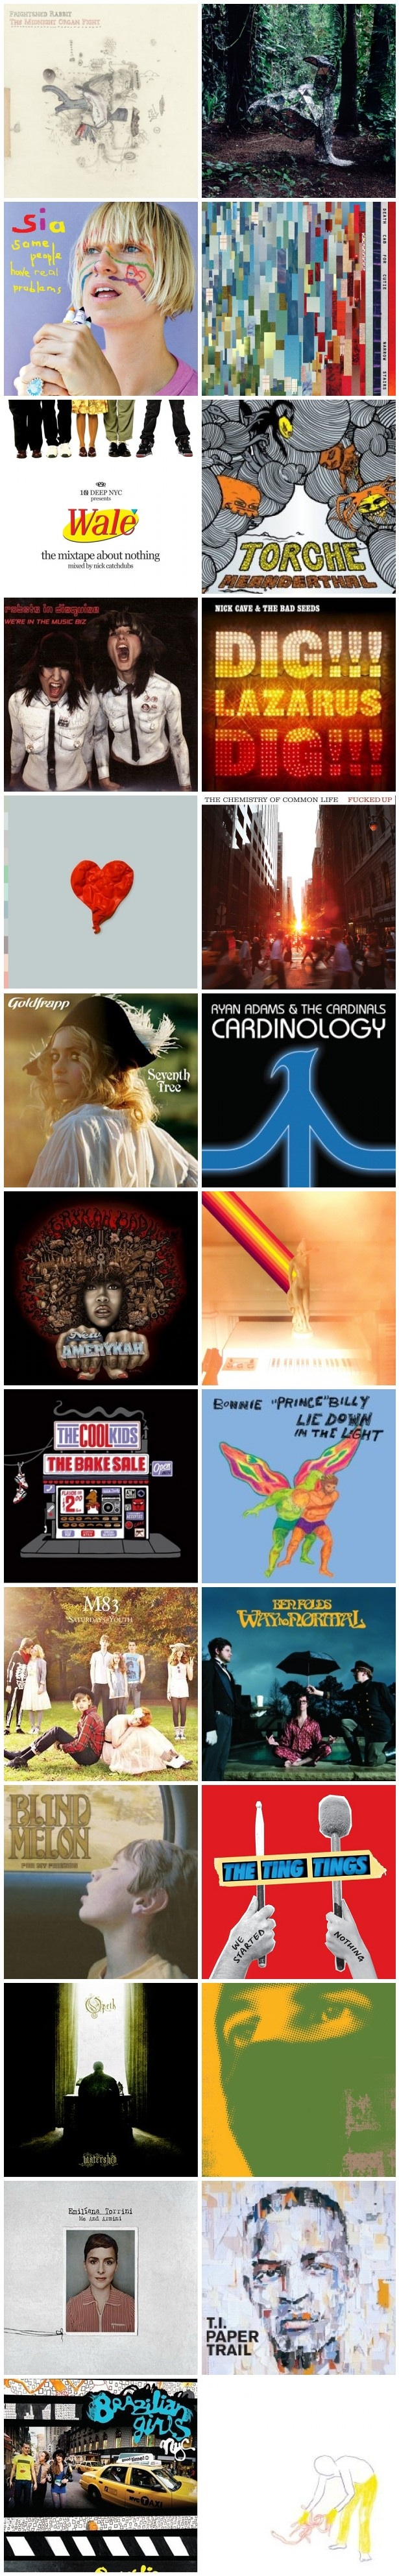 album1 CoS Year End Report: The Top 100 Albums: #100   #51